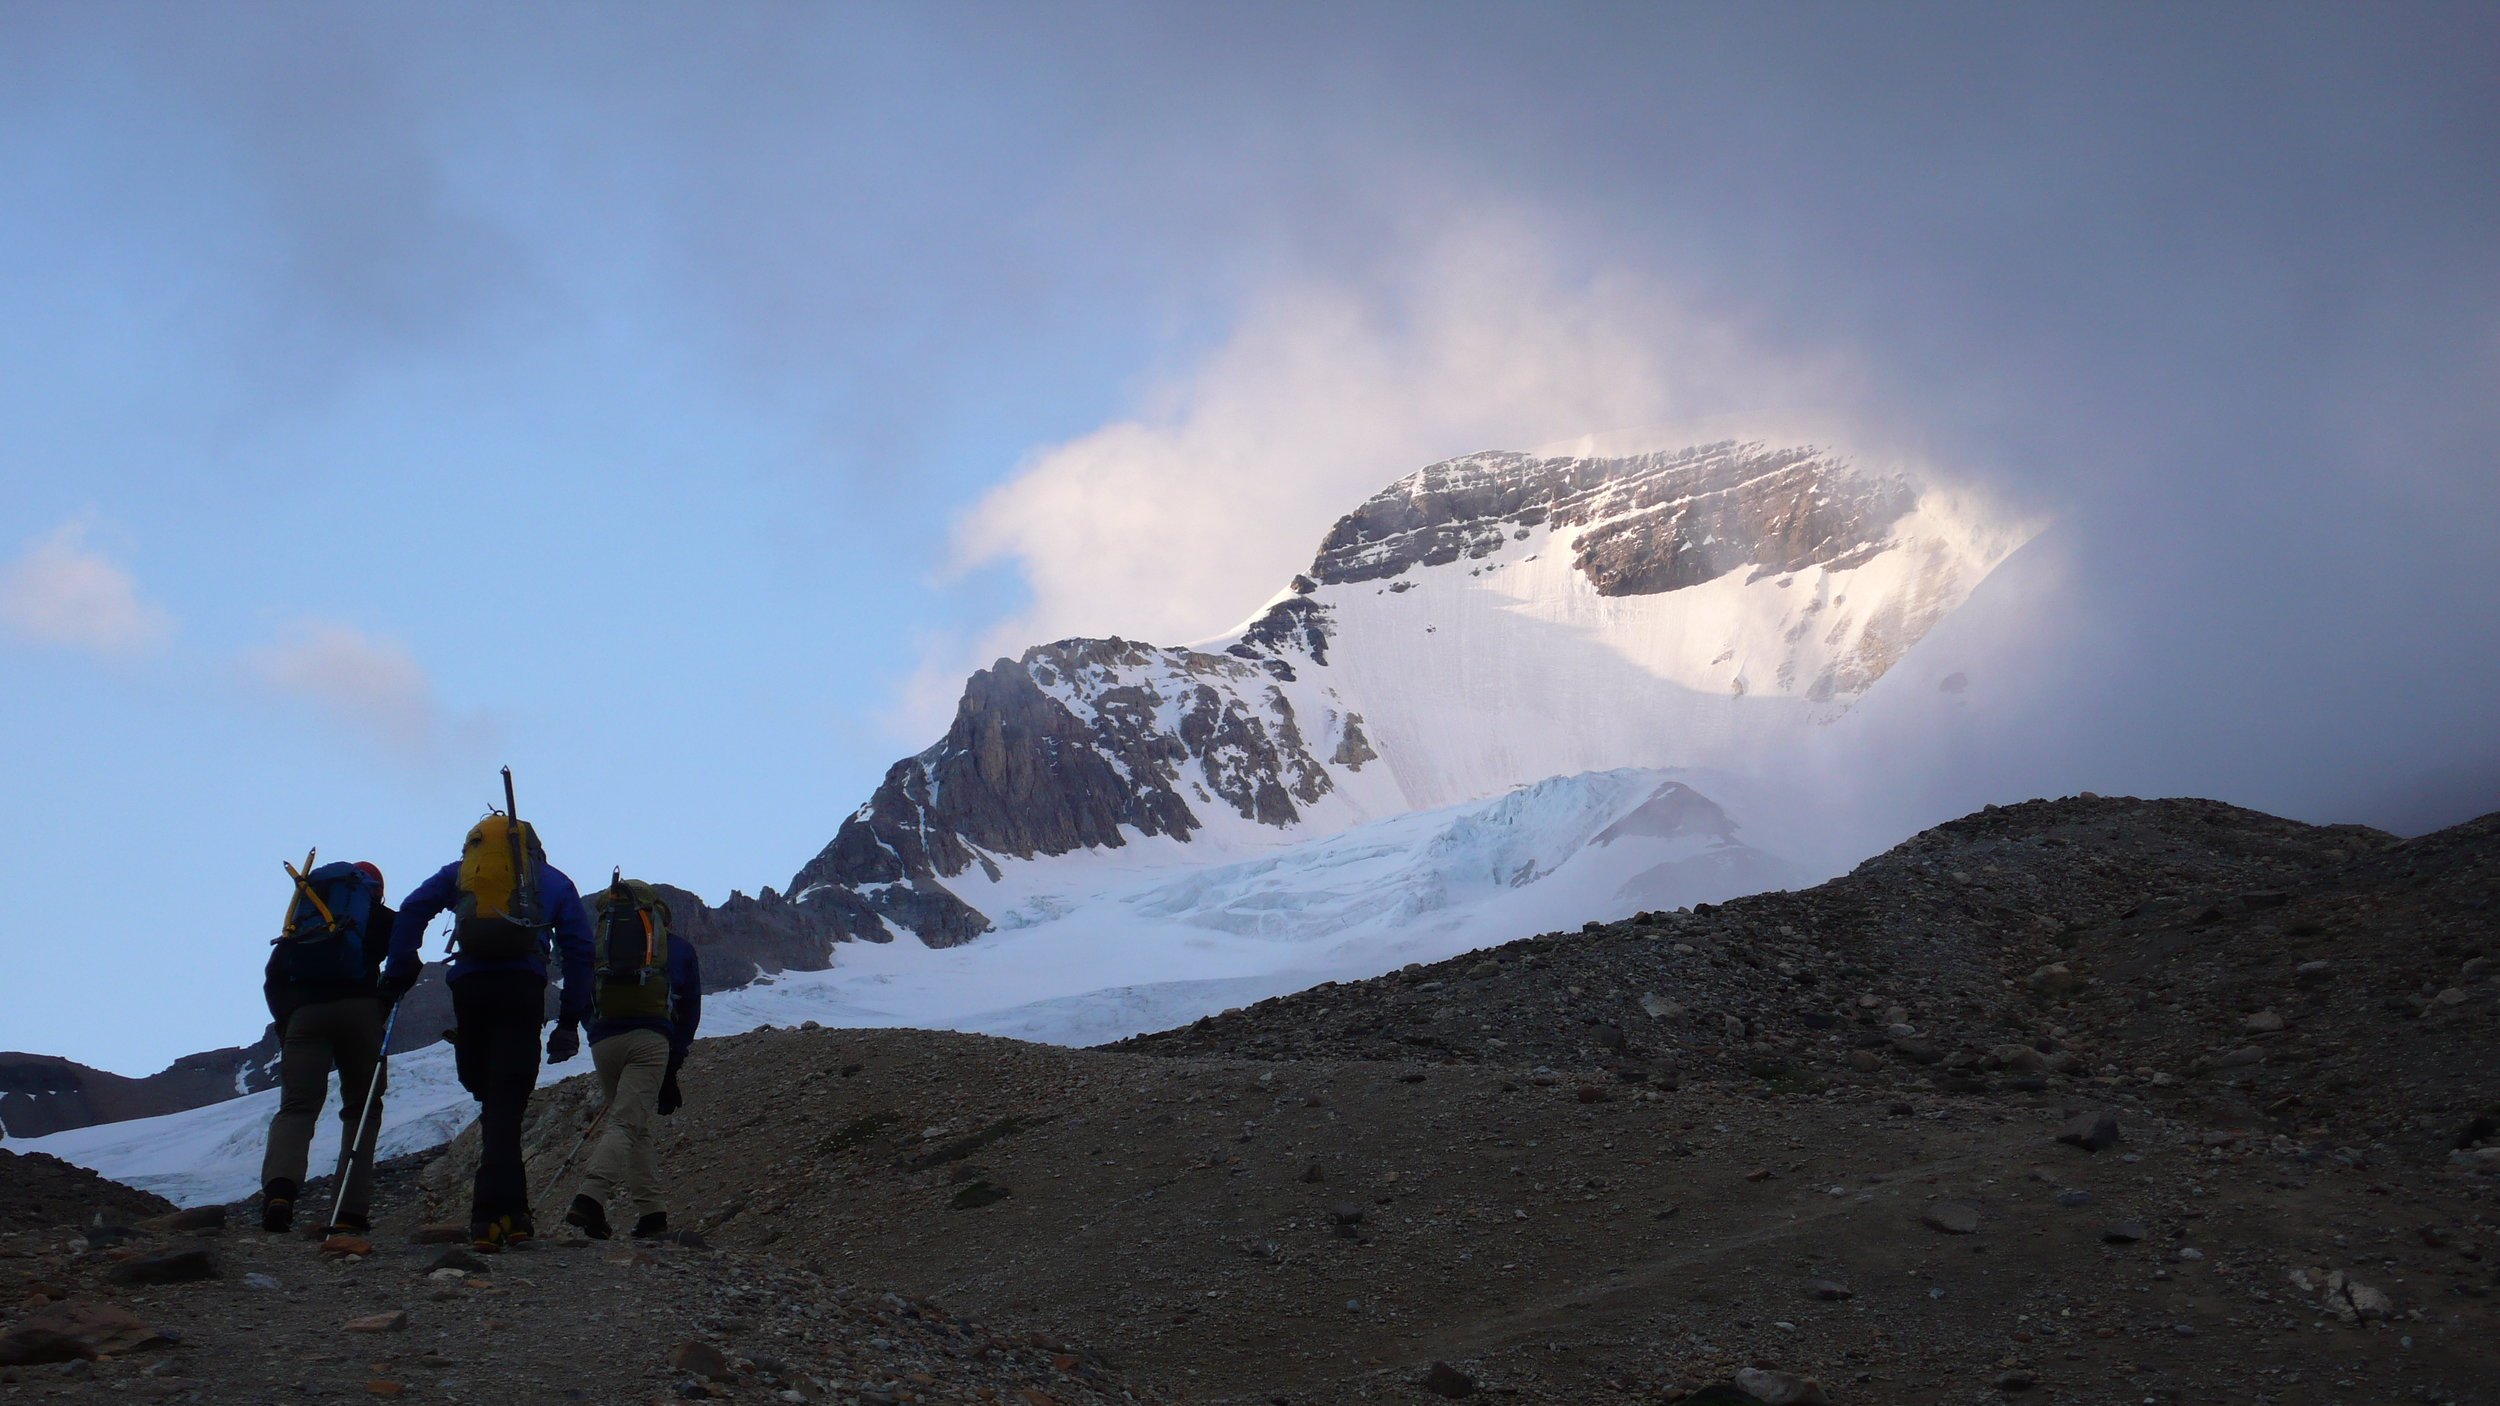 An early morning approach to Mt. Athabasca